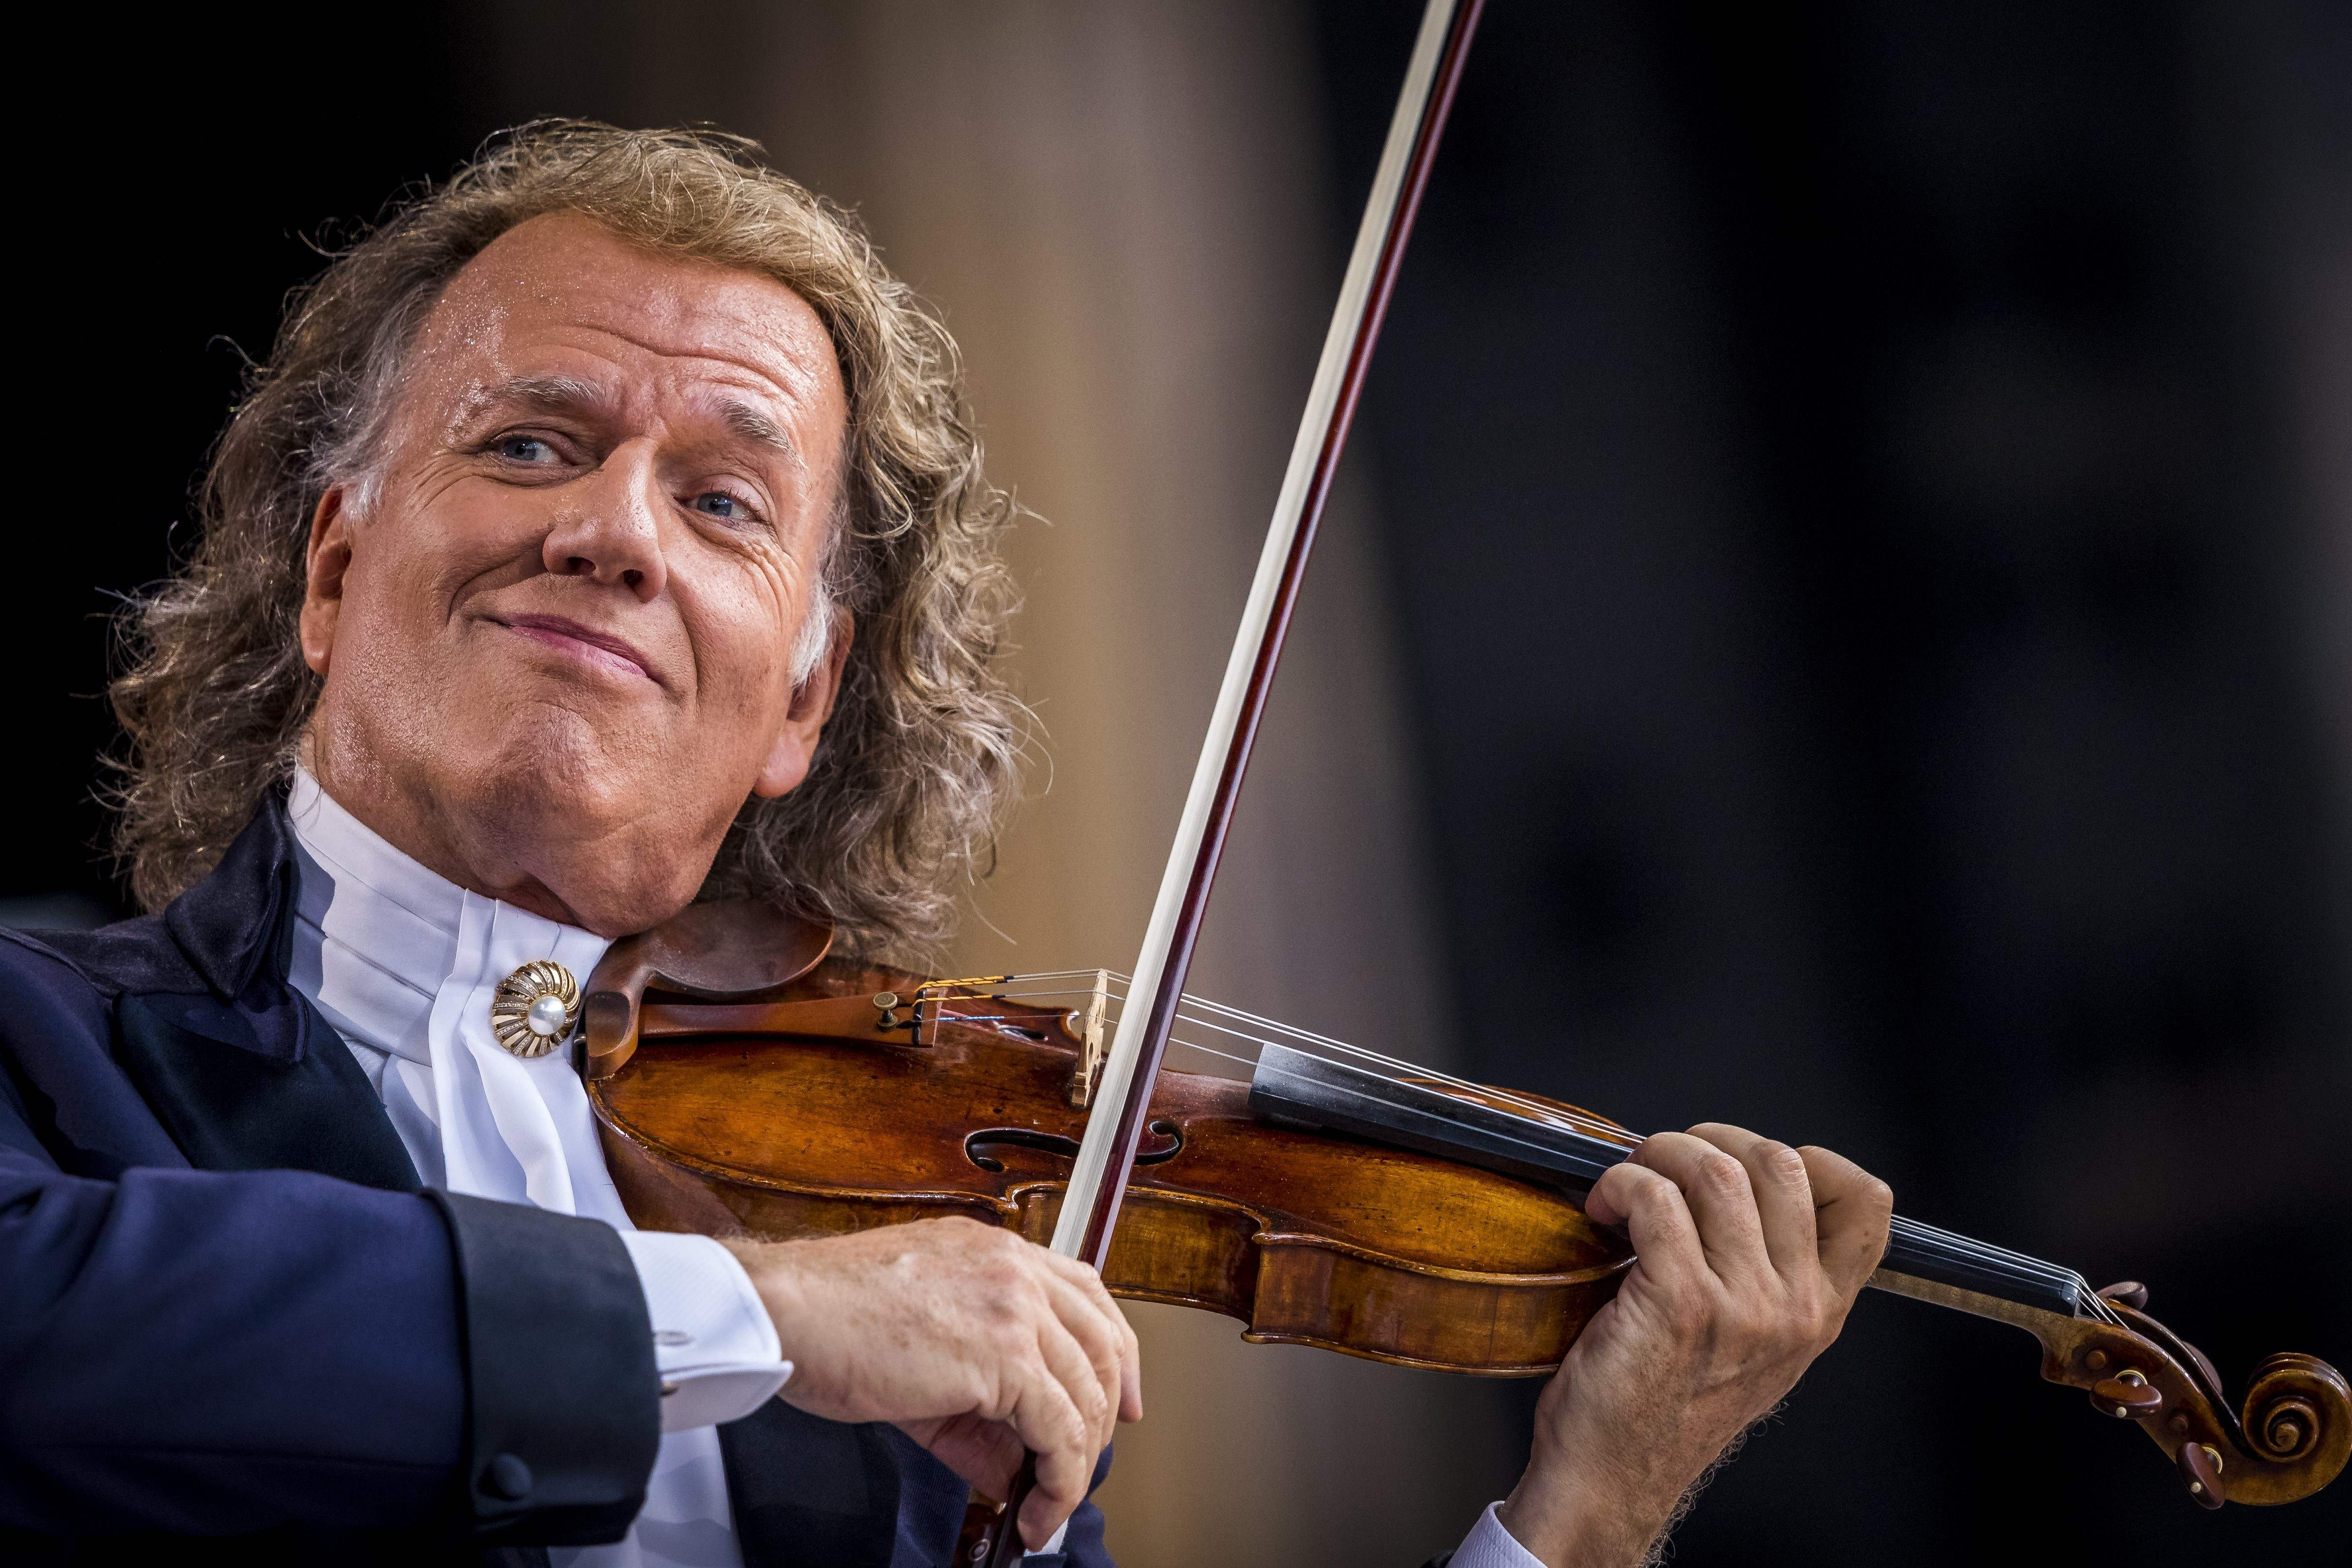 Andre Rieu leads his Johann Strauss Orchestra in a concert at the UW-Milwaukee Panther Arena Saturday.